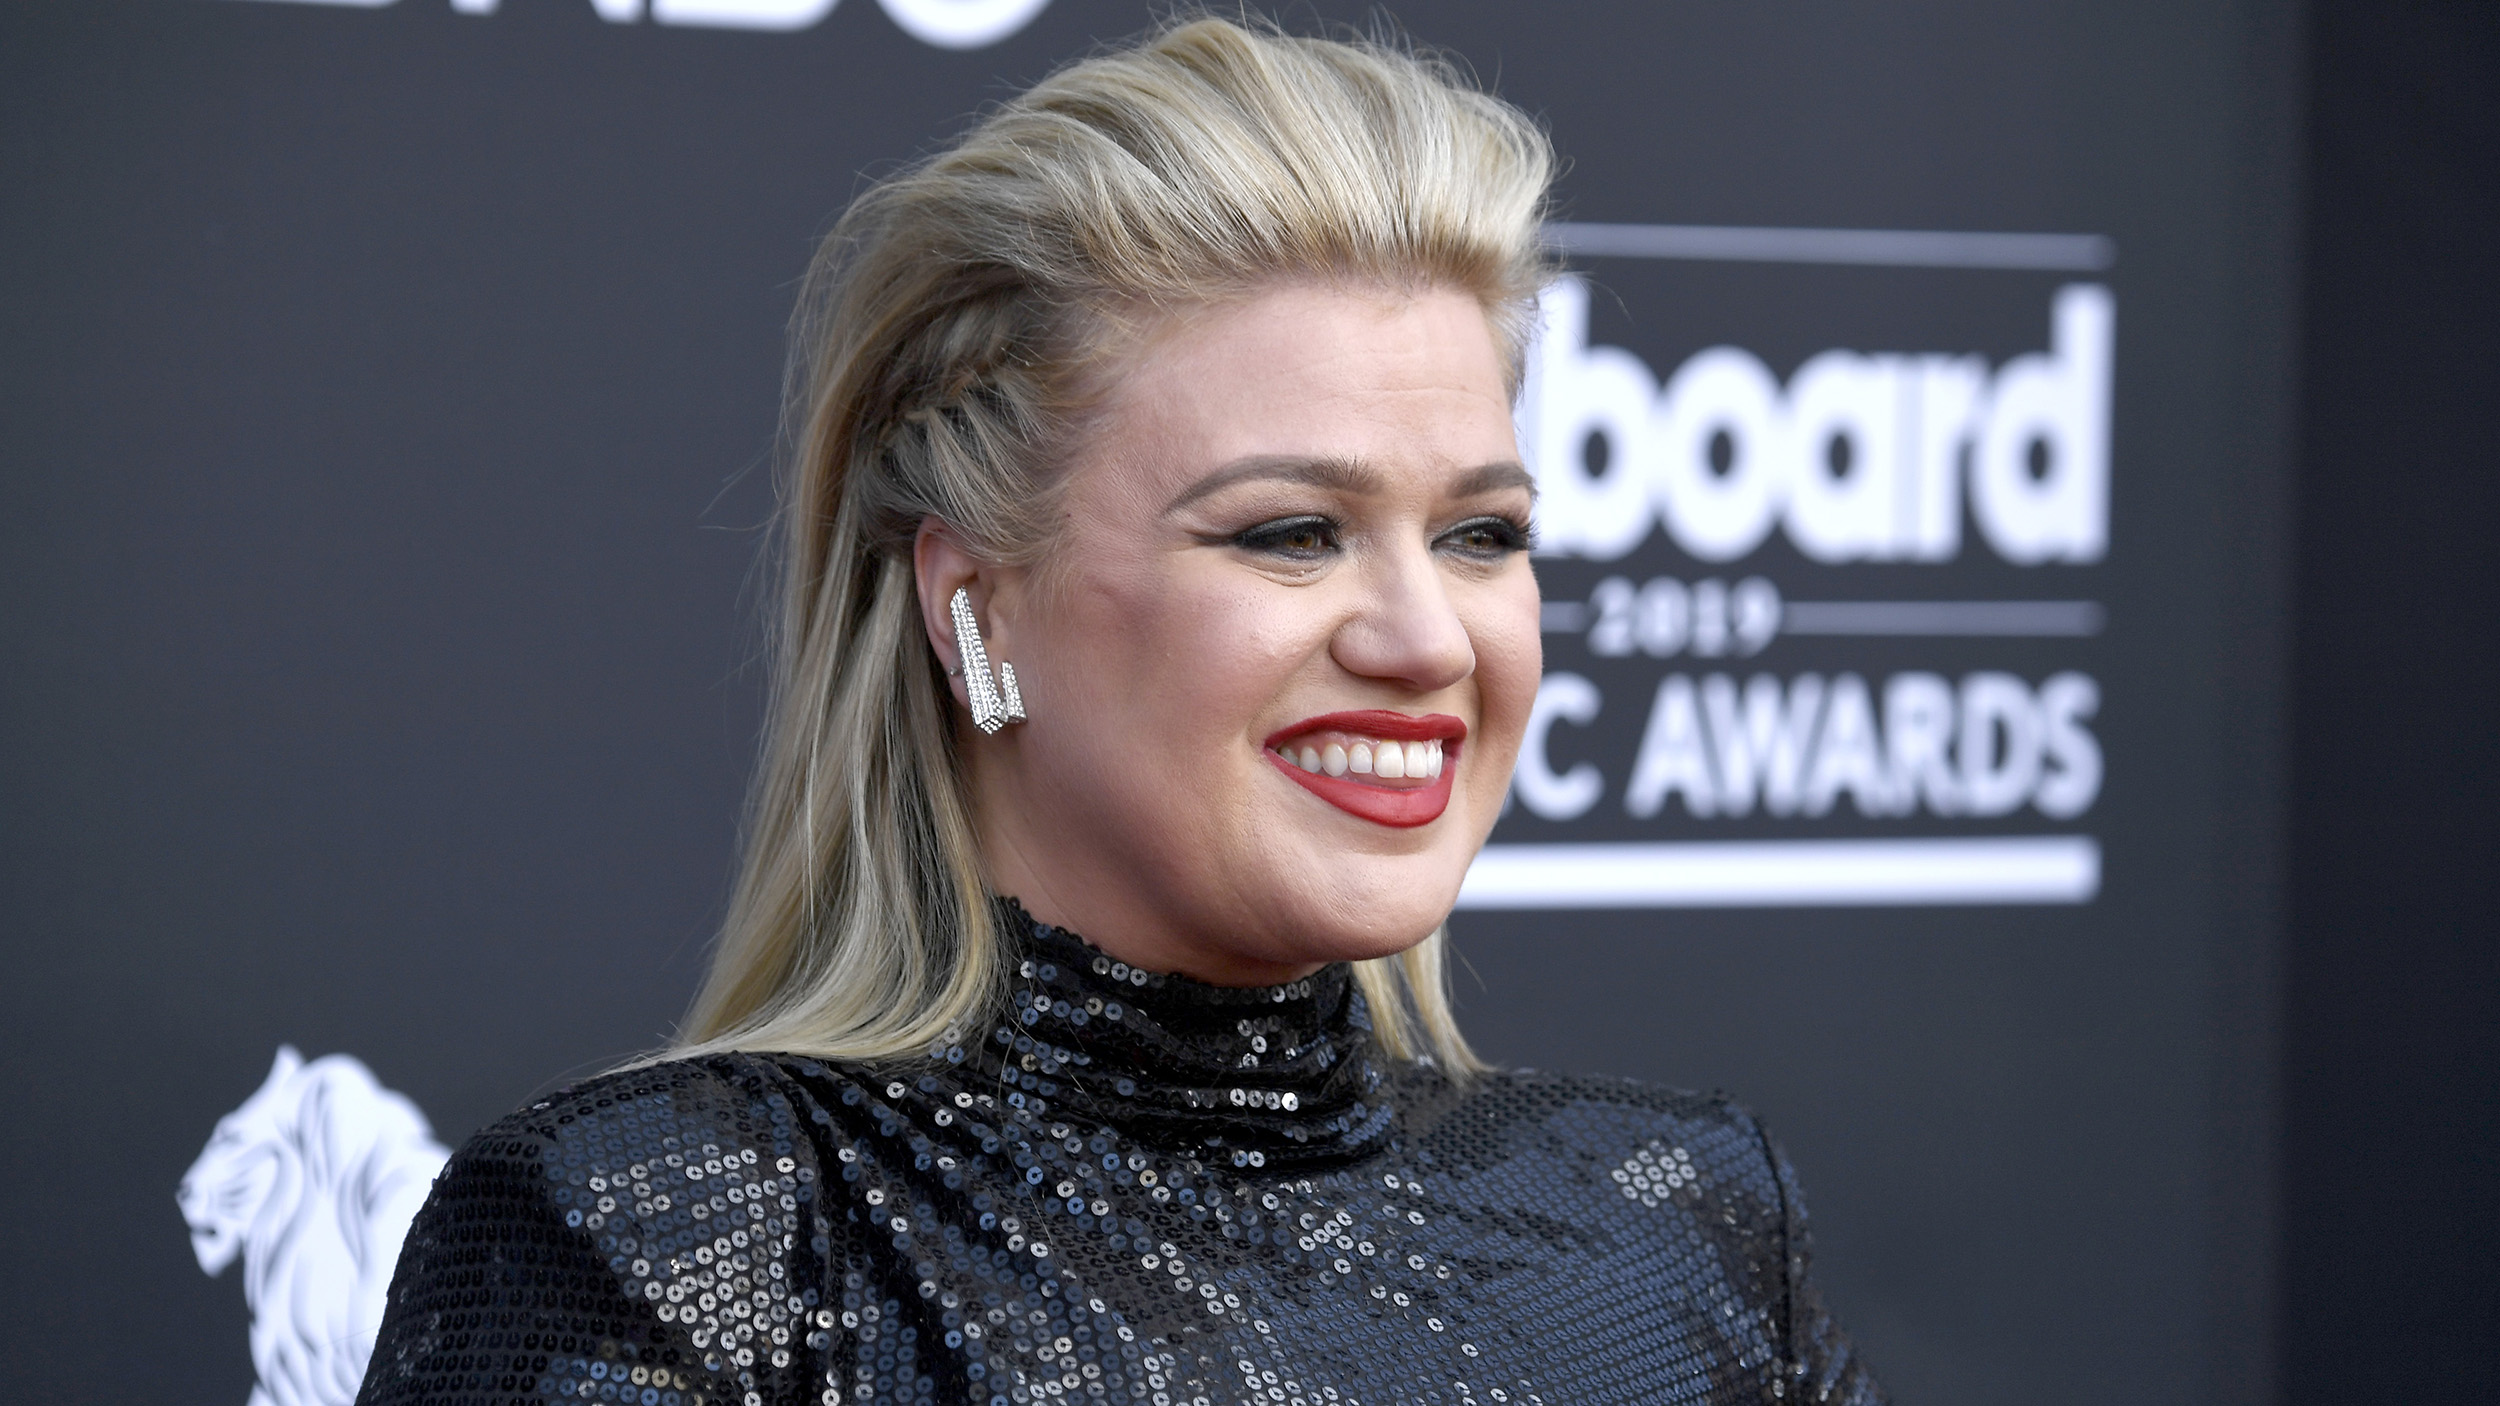 Kelly Clarkson takes on Twitter troll: 'aim higher'